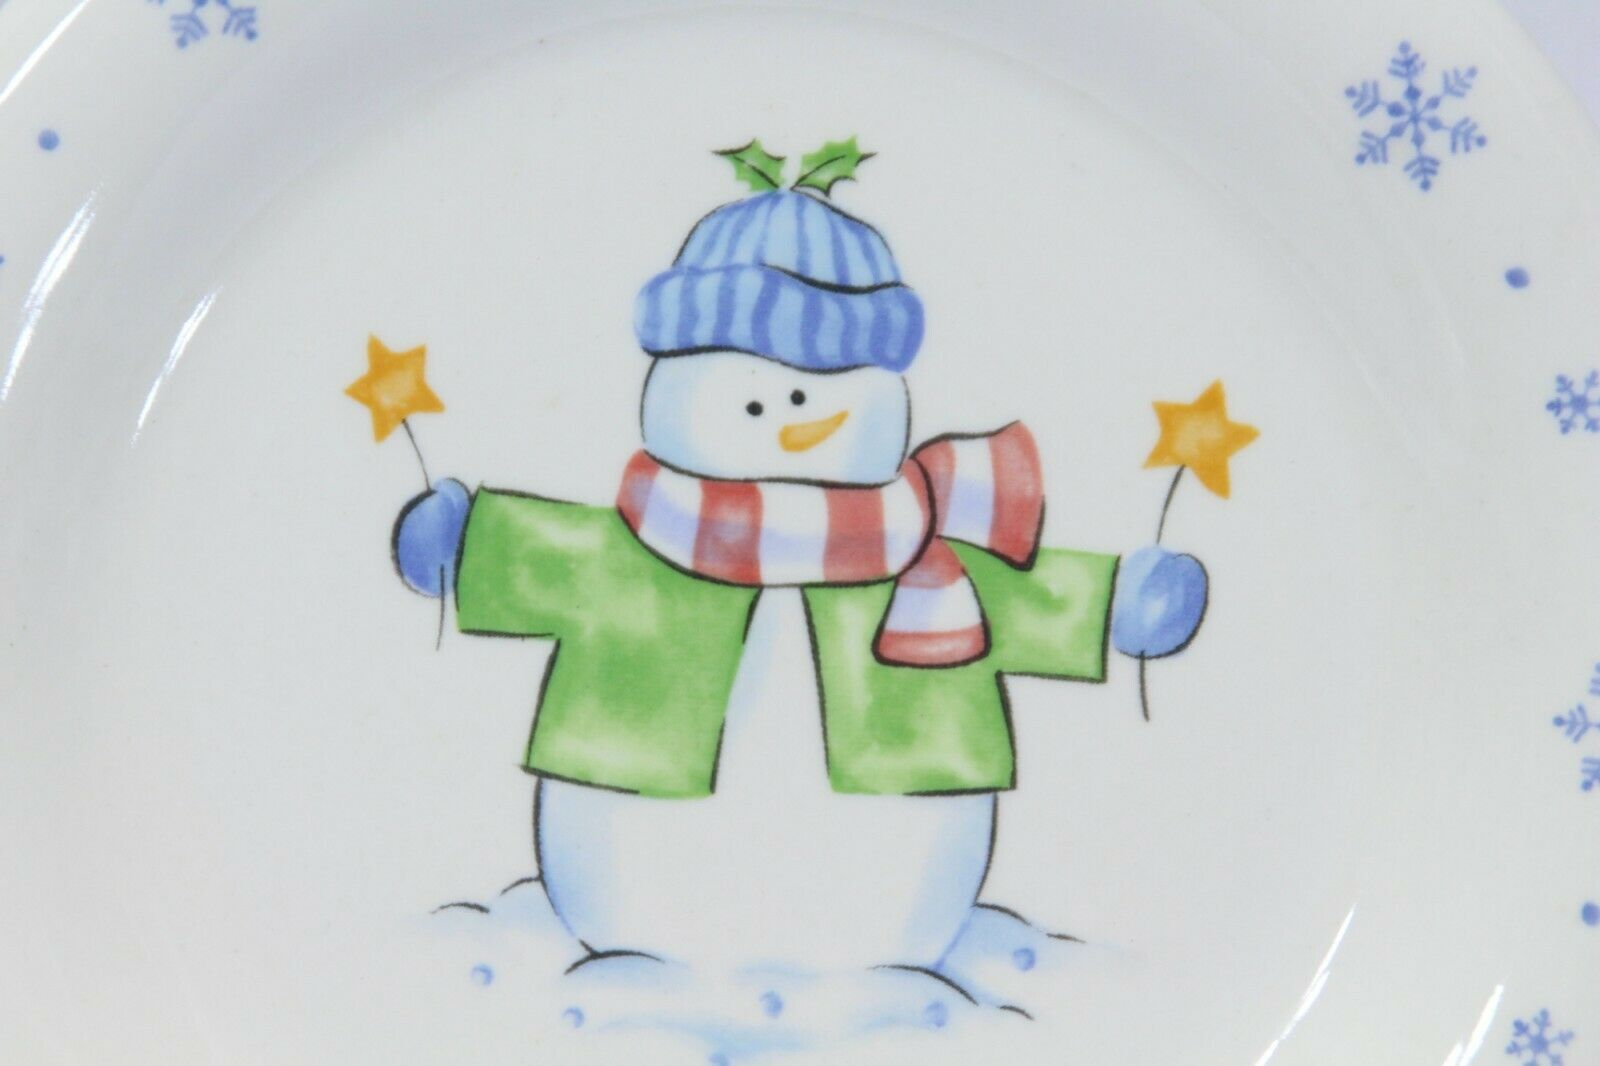 Enchanted Forest Xmas Snowman Snowflake Dinner and Salad Plates Lot of 8 image 4